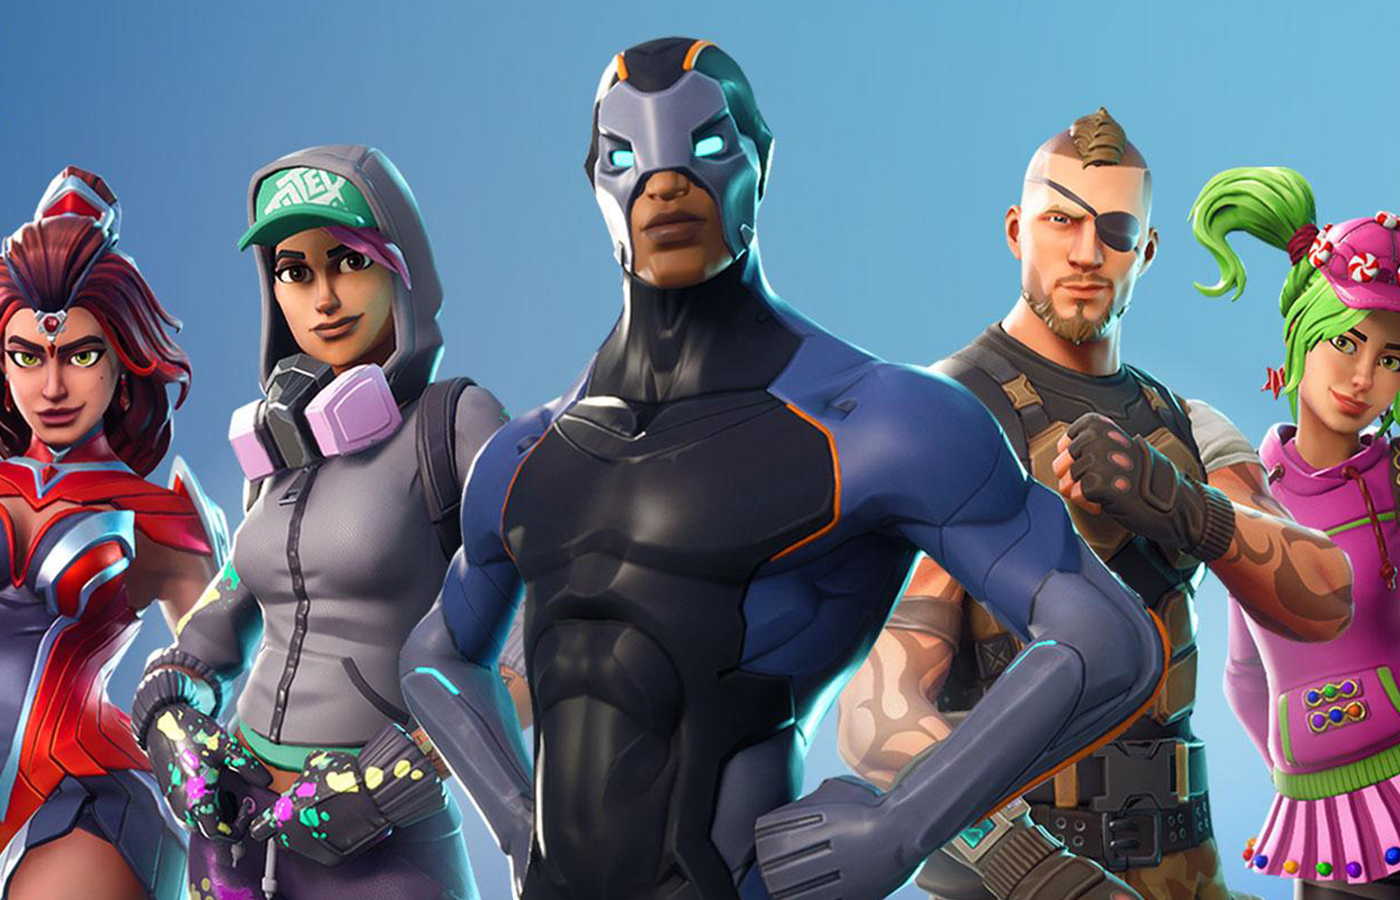 Epic Games Fortnite Login Pc Watch Out For These Fortnite Scams Experian